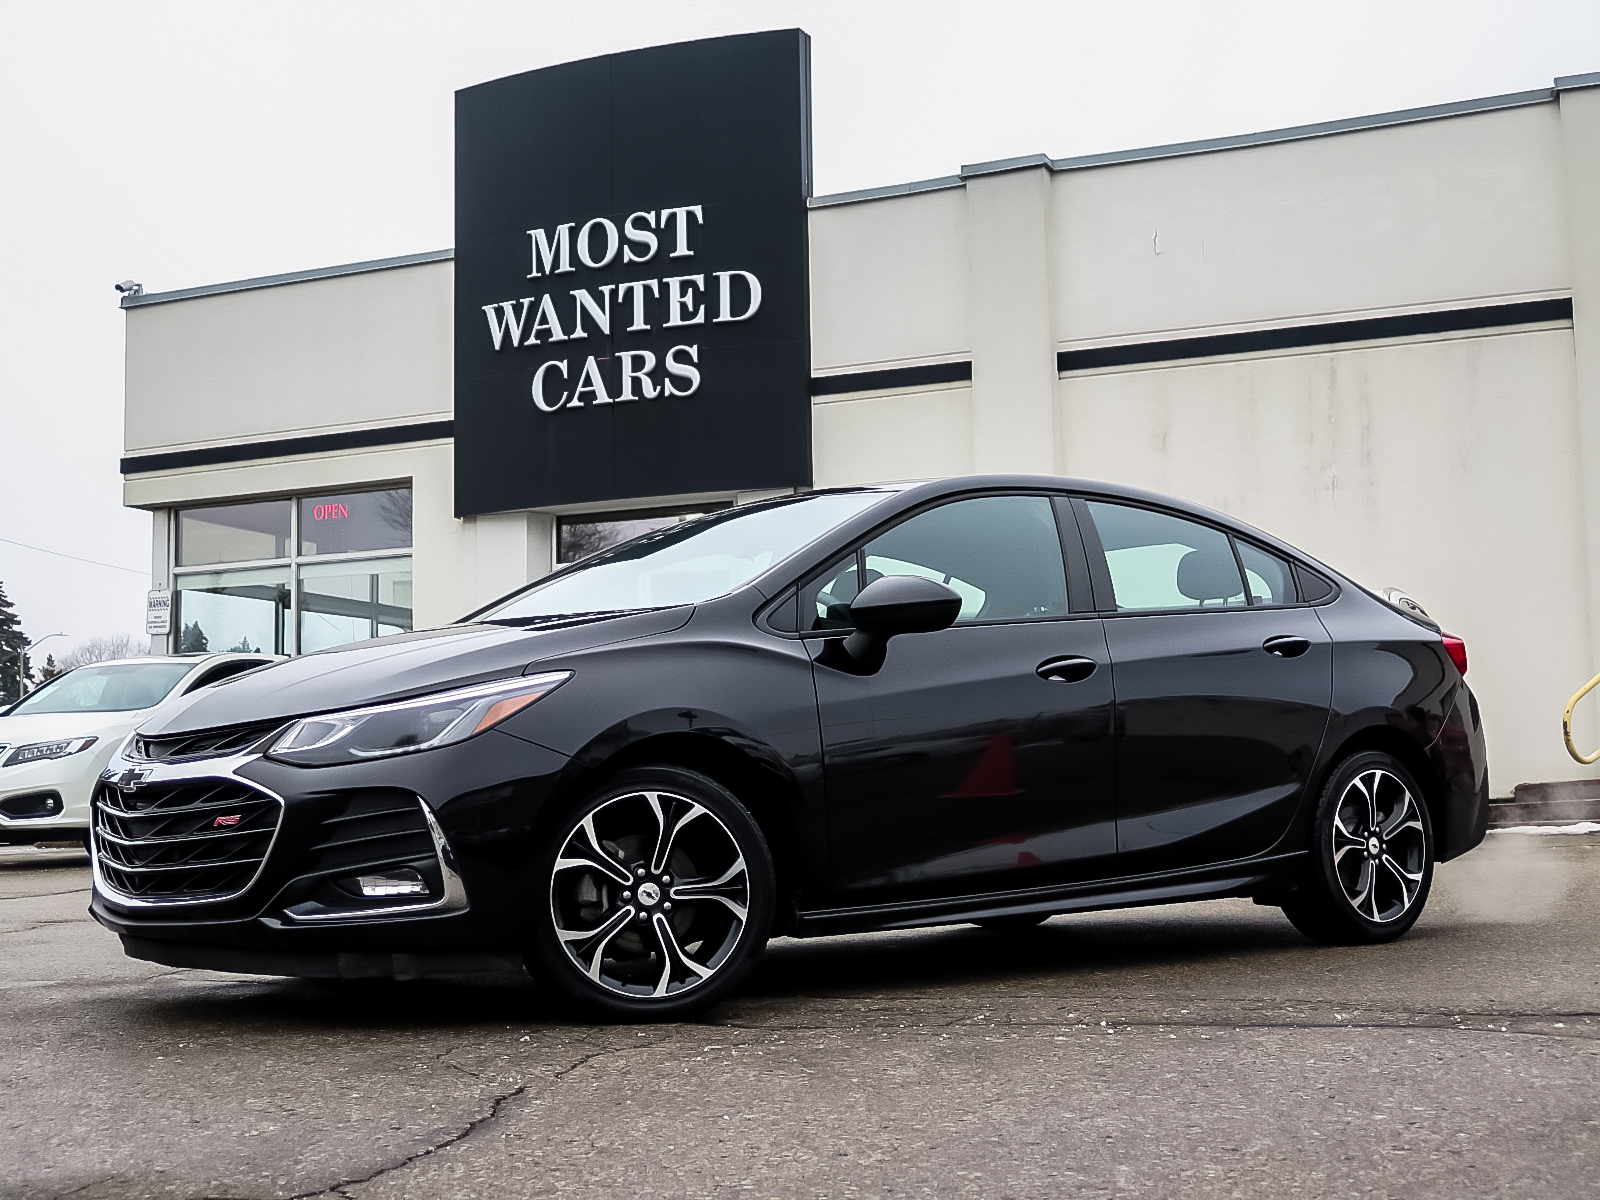 used 2019 Chevrolet Cruze car, priced at $17,492